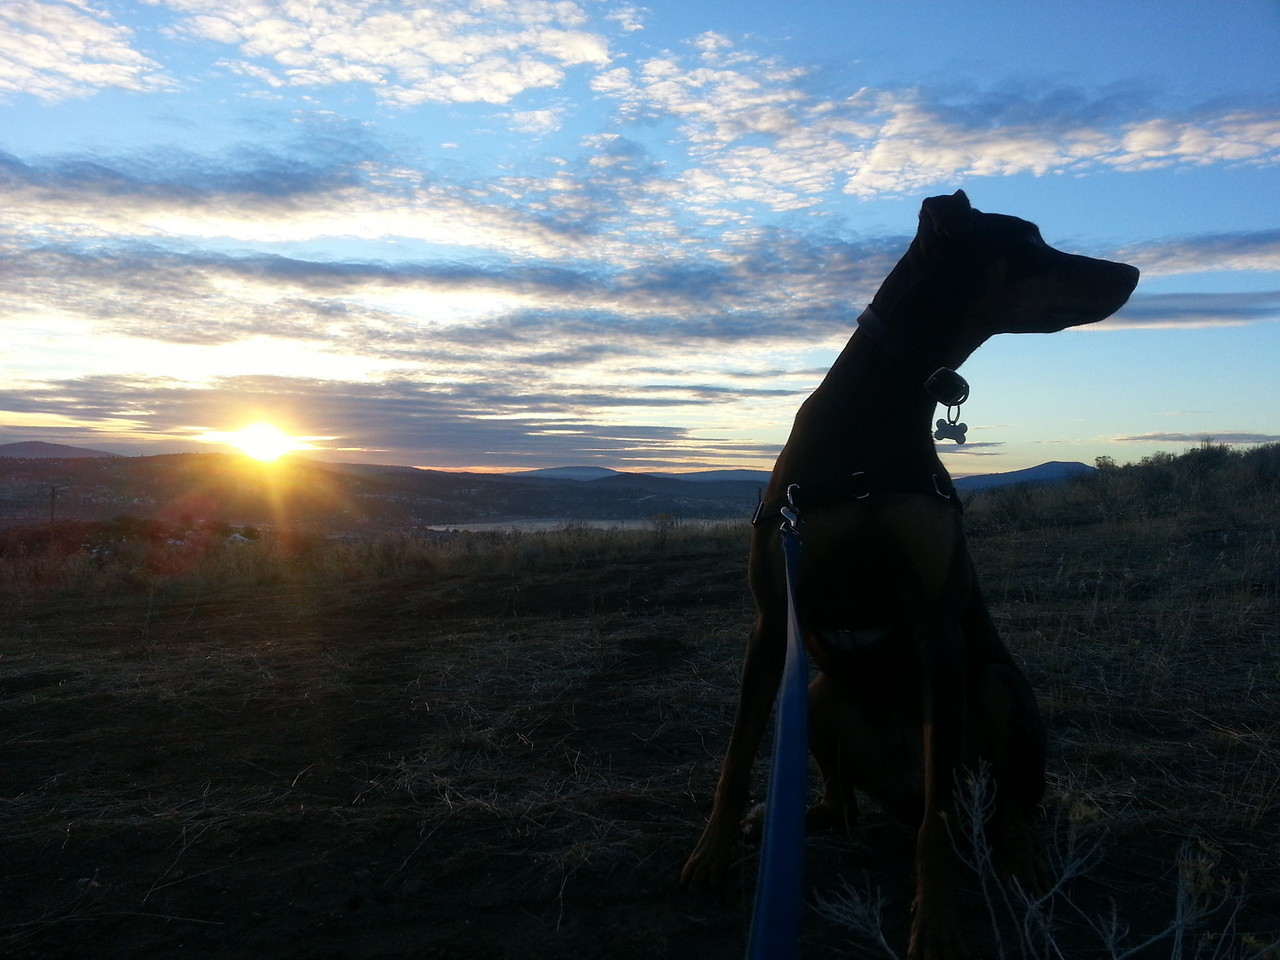 Luca in the Klamath Hills